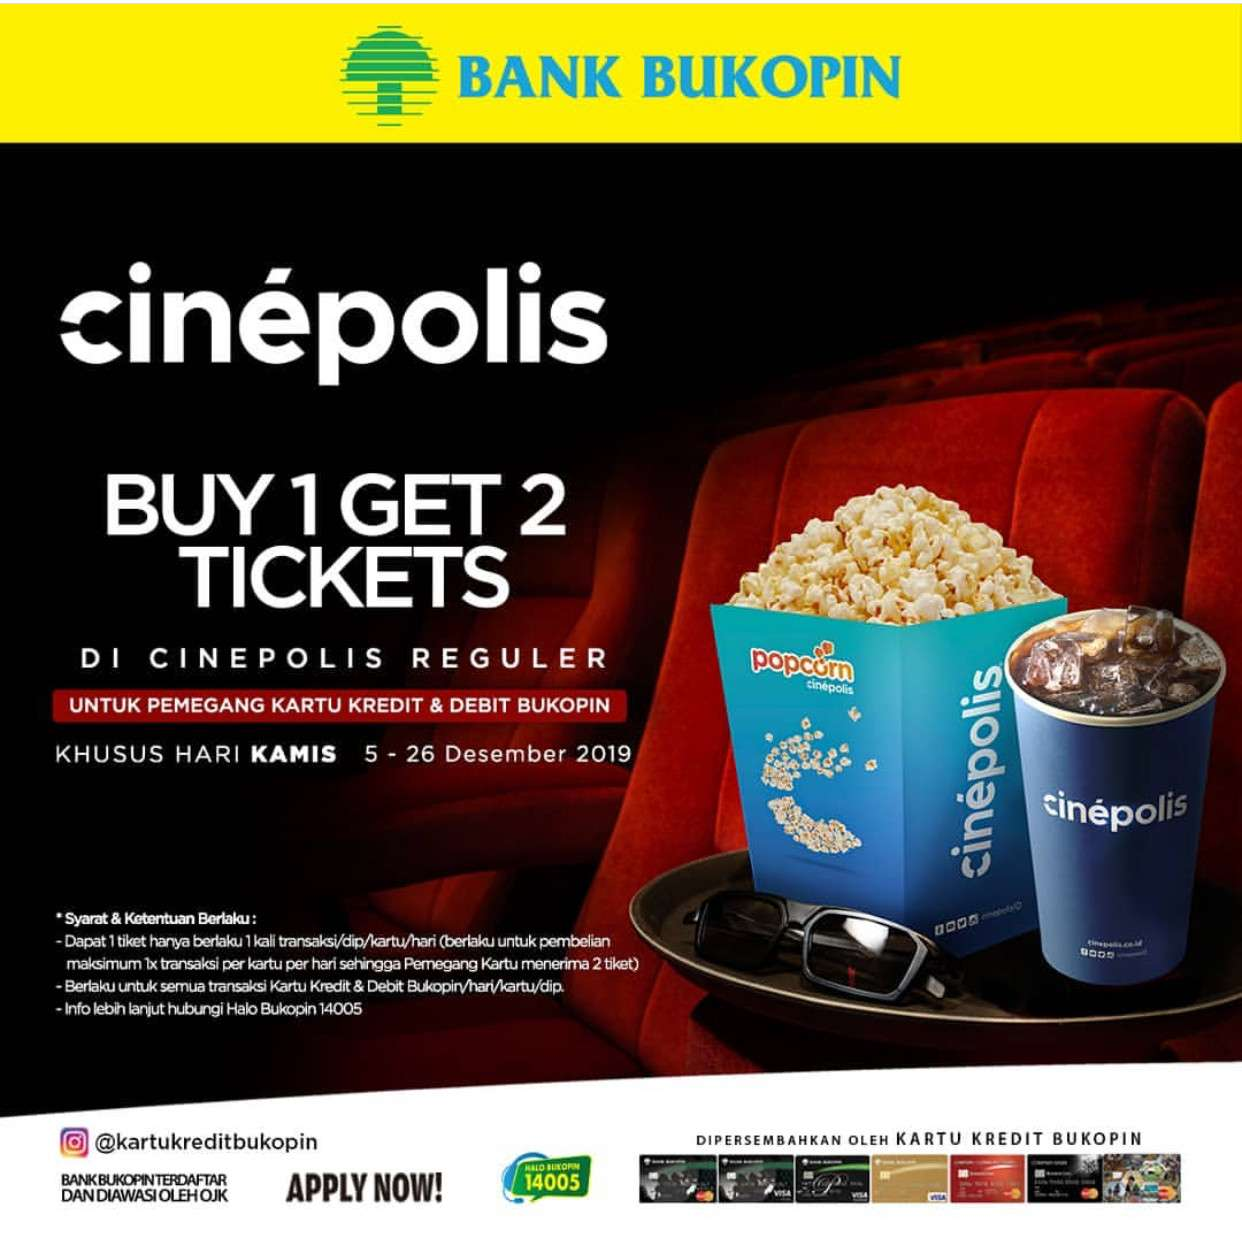 Bukopin Promo Buy 1 Get 2 Tickets Dengan Kartu Kredit & Debit